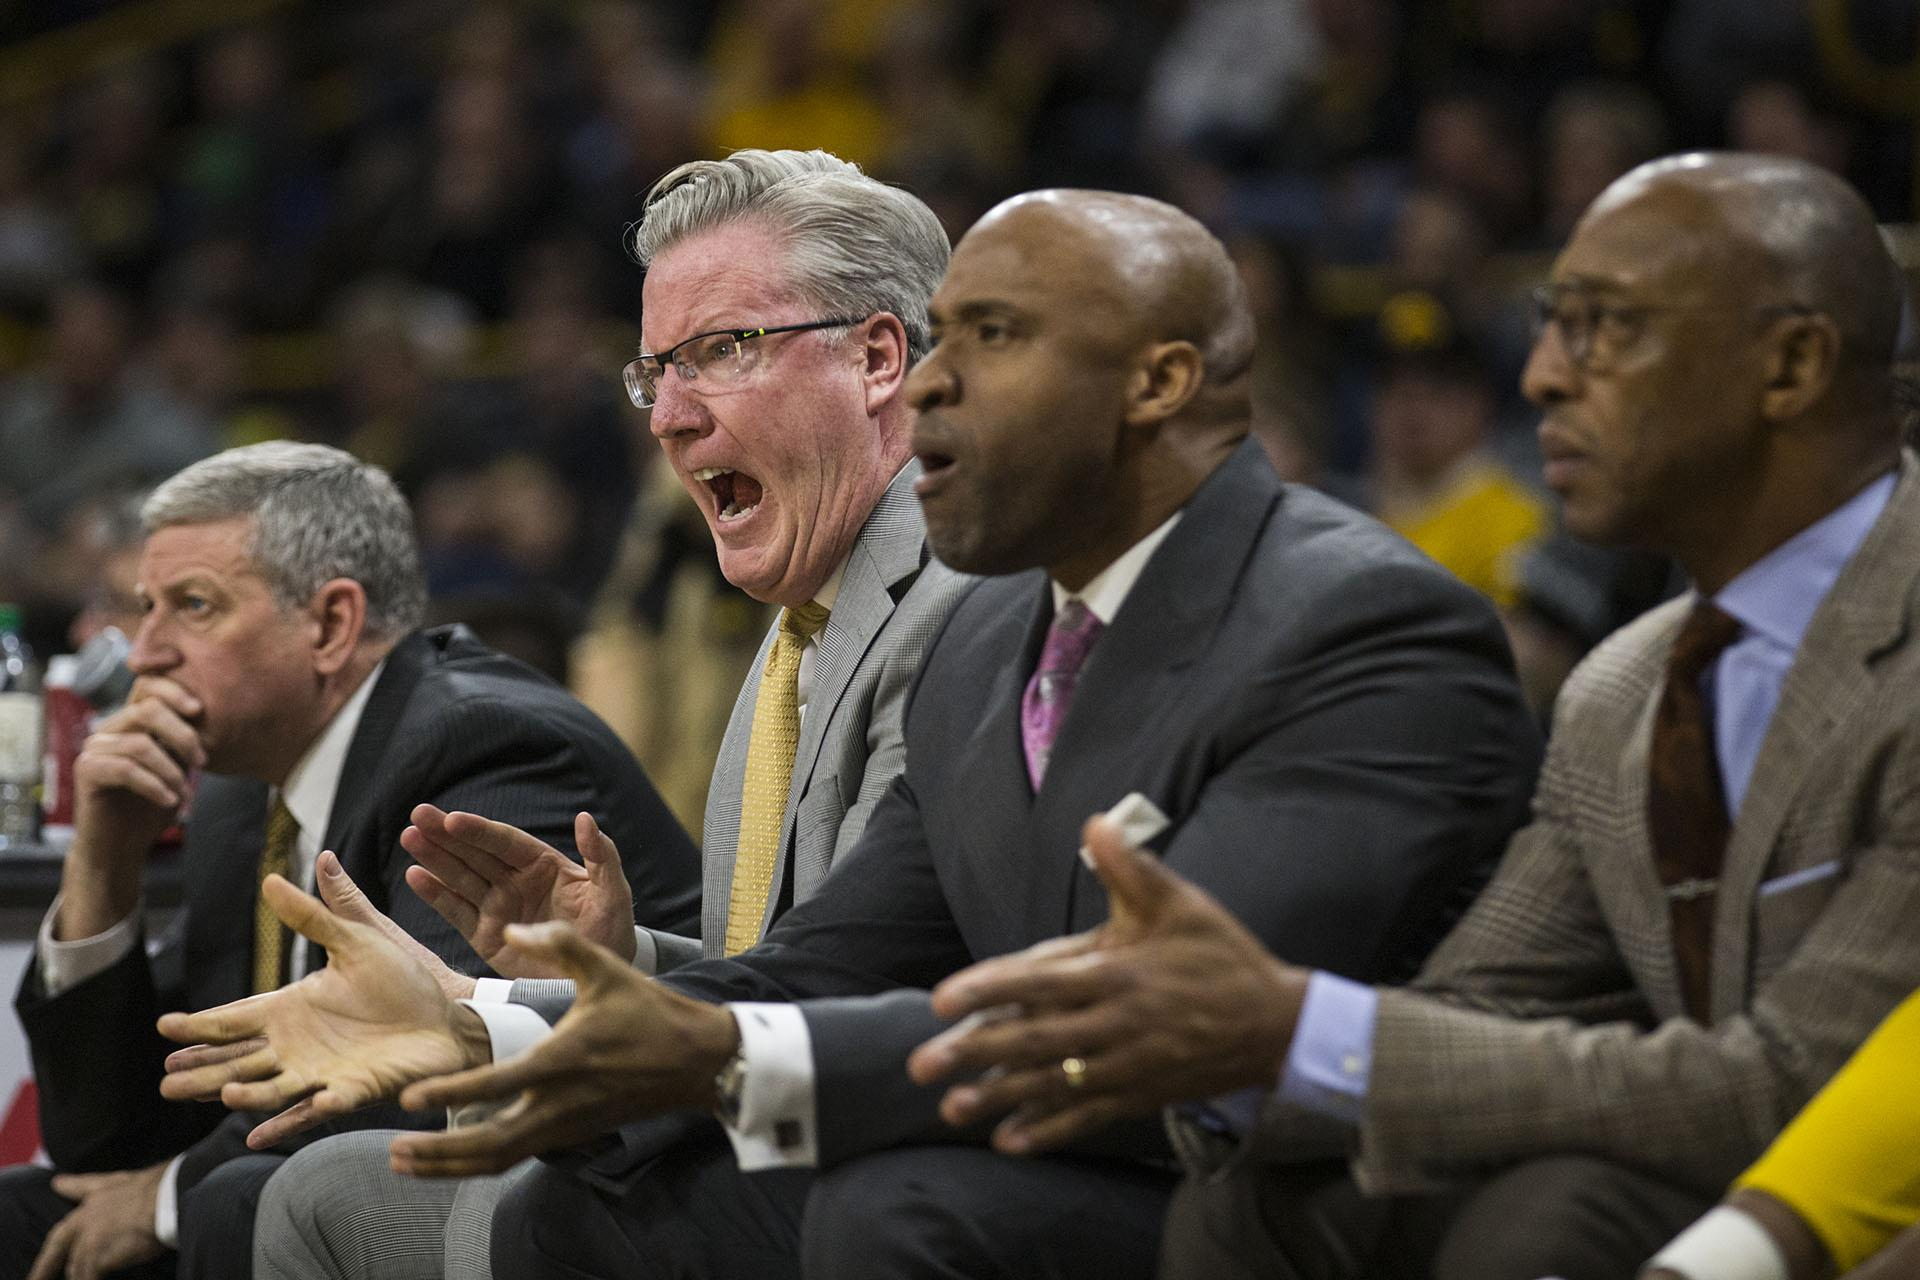 Iowa head coach Fran McCaffery yells to an Iowa player during the NCAA men's basketball game between Iowa and Minnesota at Carver-Hawkeye Arena on Tuesday, Jan. 30, 2018. The Hawkeyes are going into the game with a Big Ten conference record of 2-8. Iowa went on to defeat the Golden Gophers 94-80. (Ben Allan Smith/The Daily Iowan)